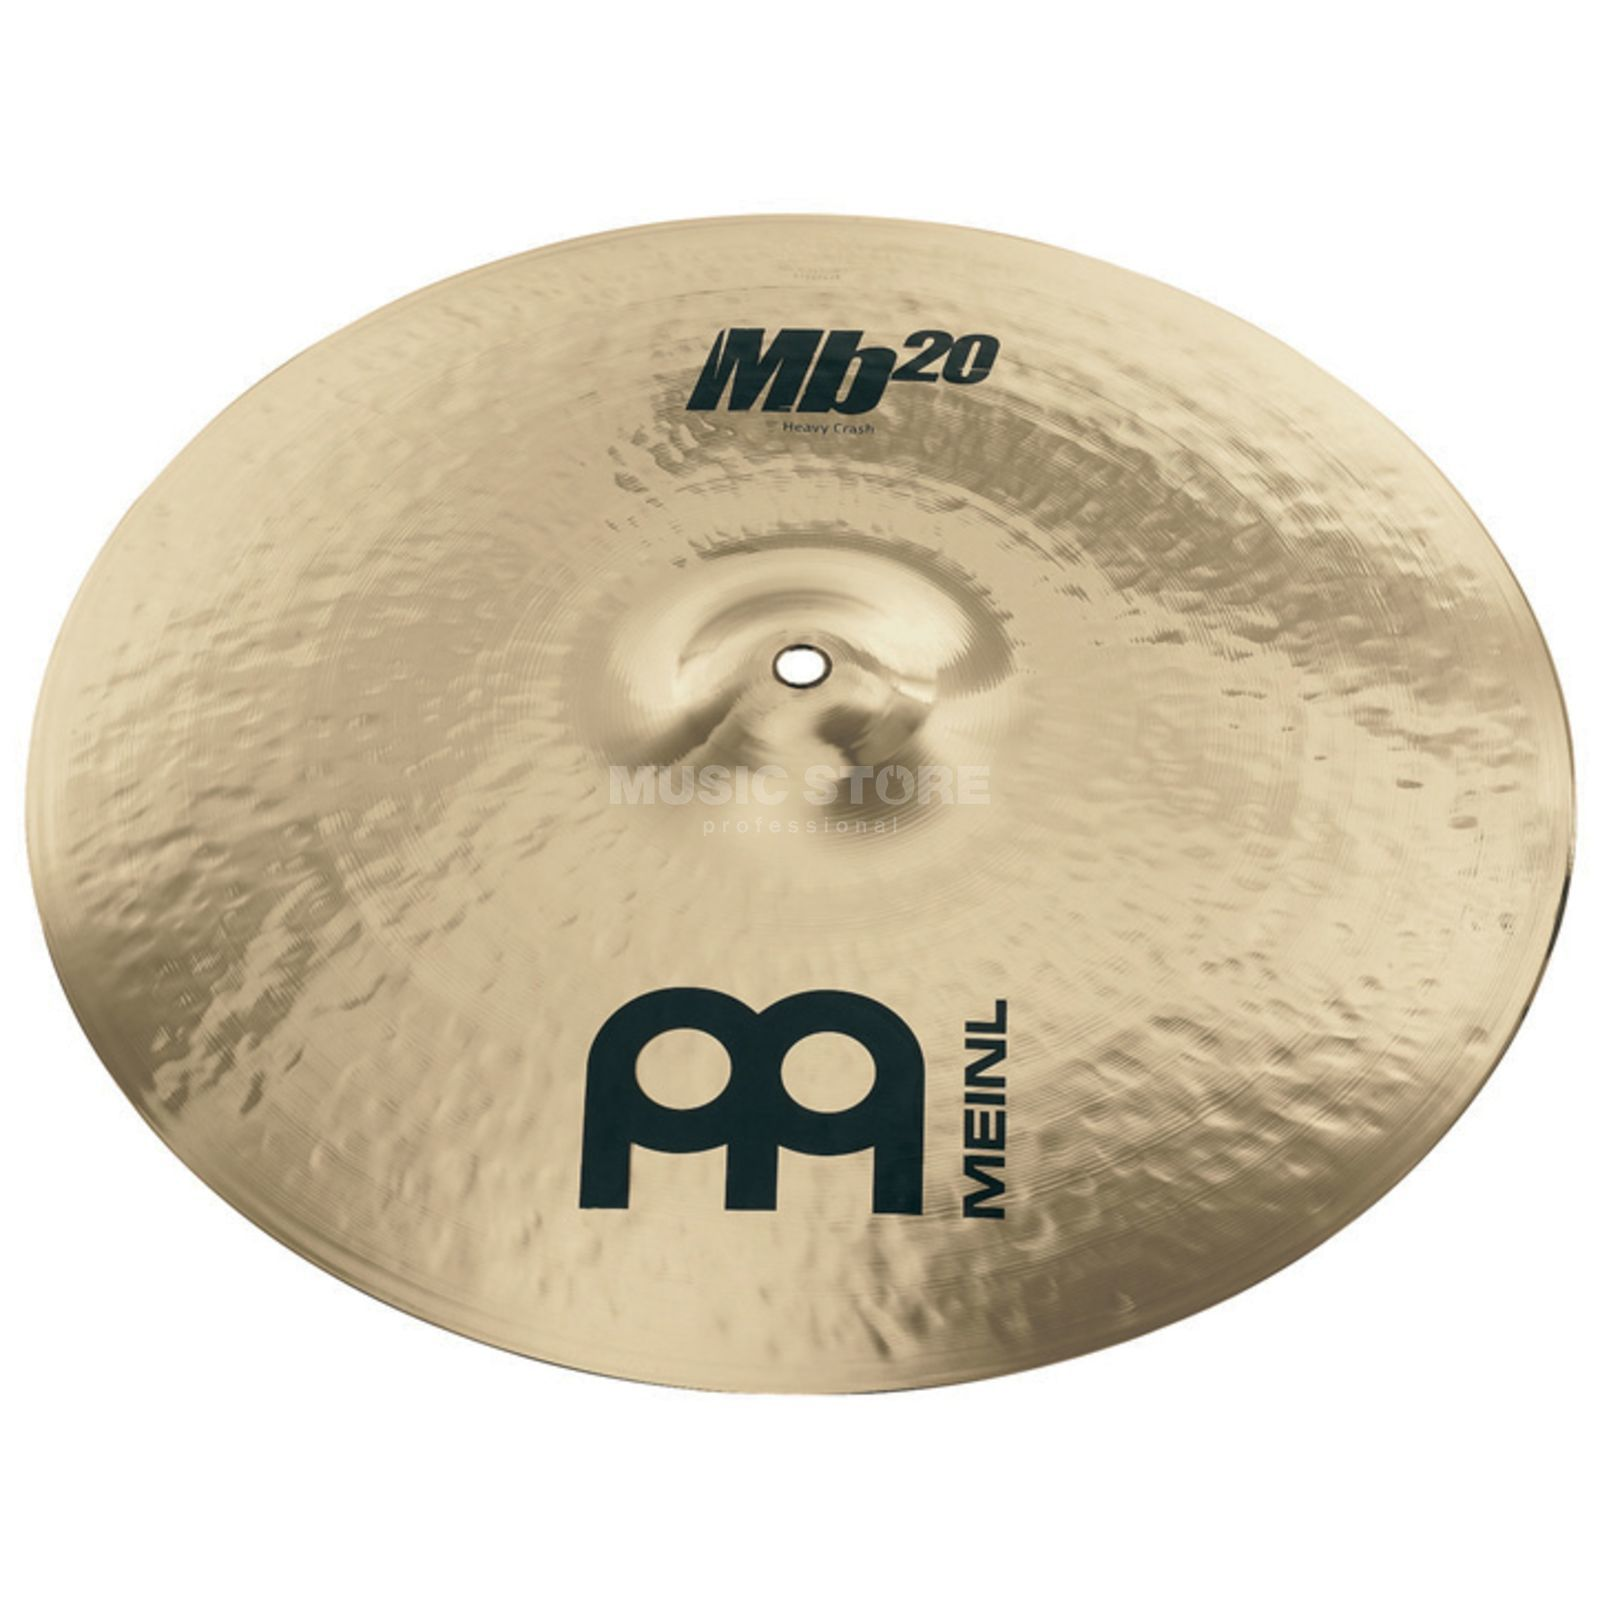 "Meinl MB20 Heavy Crash 16"" MB20-16HC-B, Brilliant Finish Immagine prodotto"